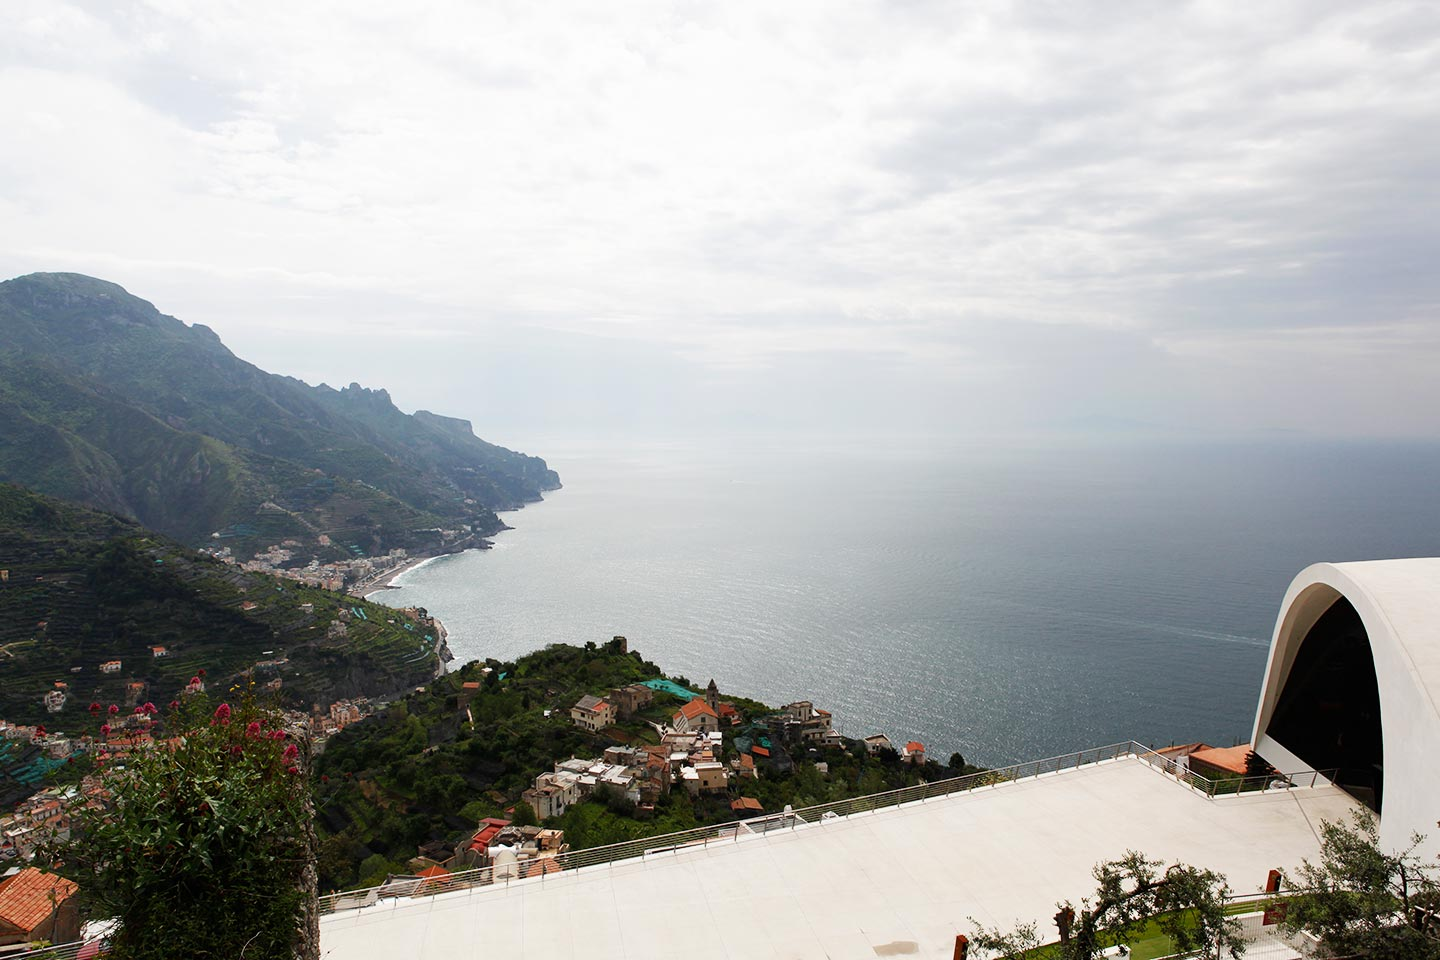 Panorama und Oscar-Niemeyer-Auditorium in Ravello